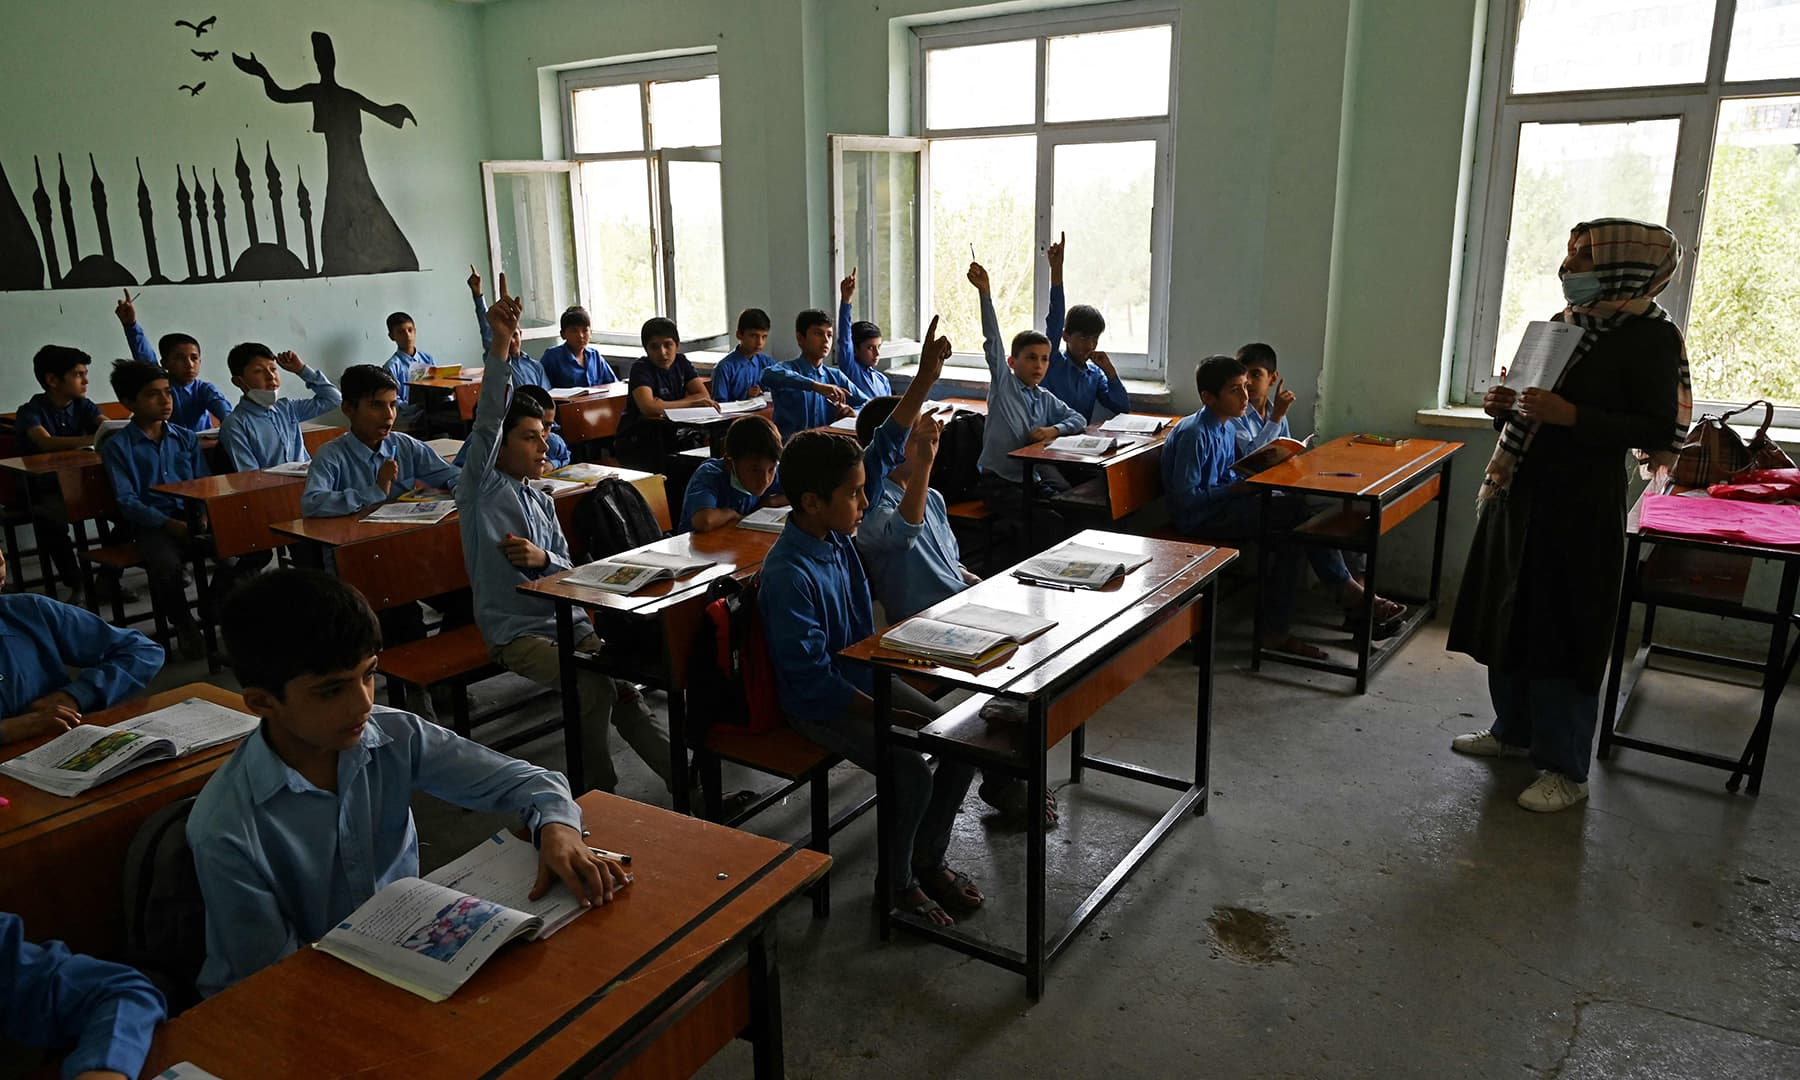 A teacher conducts a class at a government middle school in Kabul on August 30. — AFP